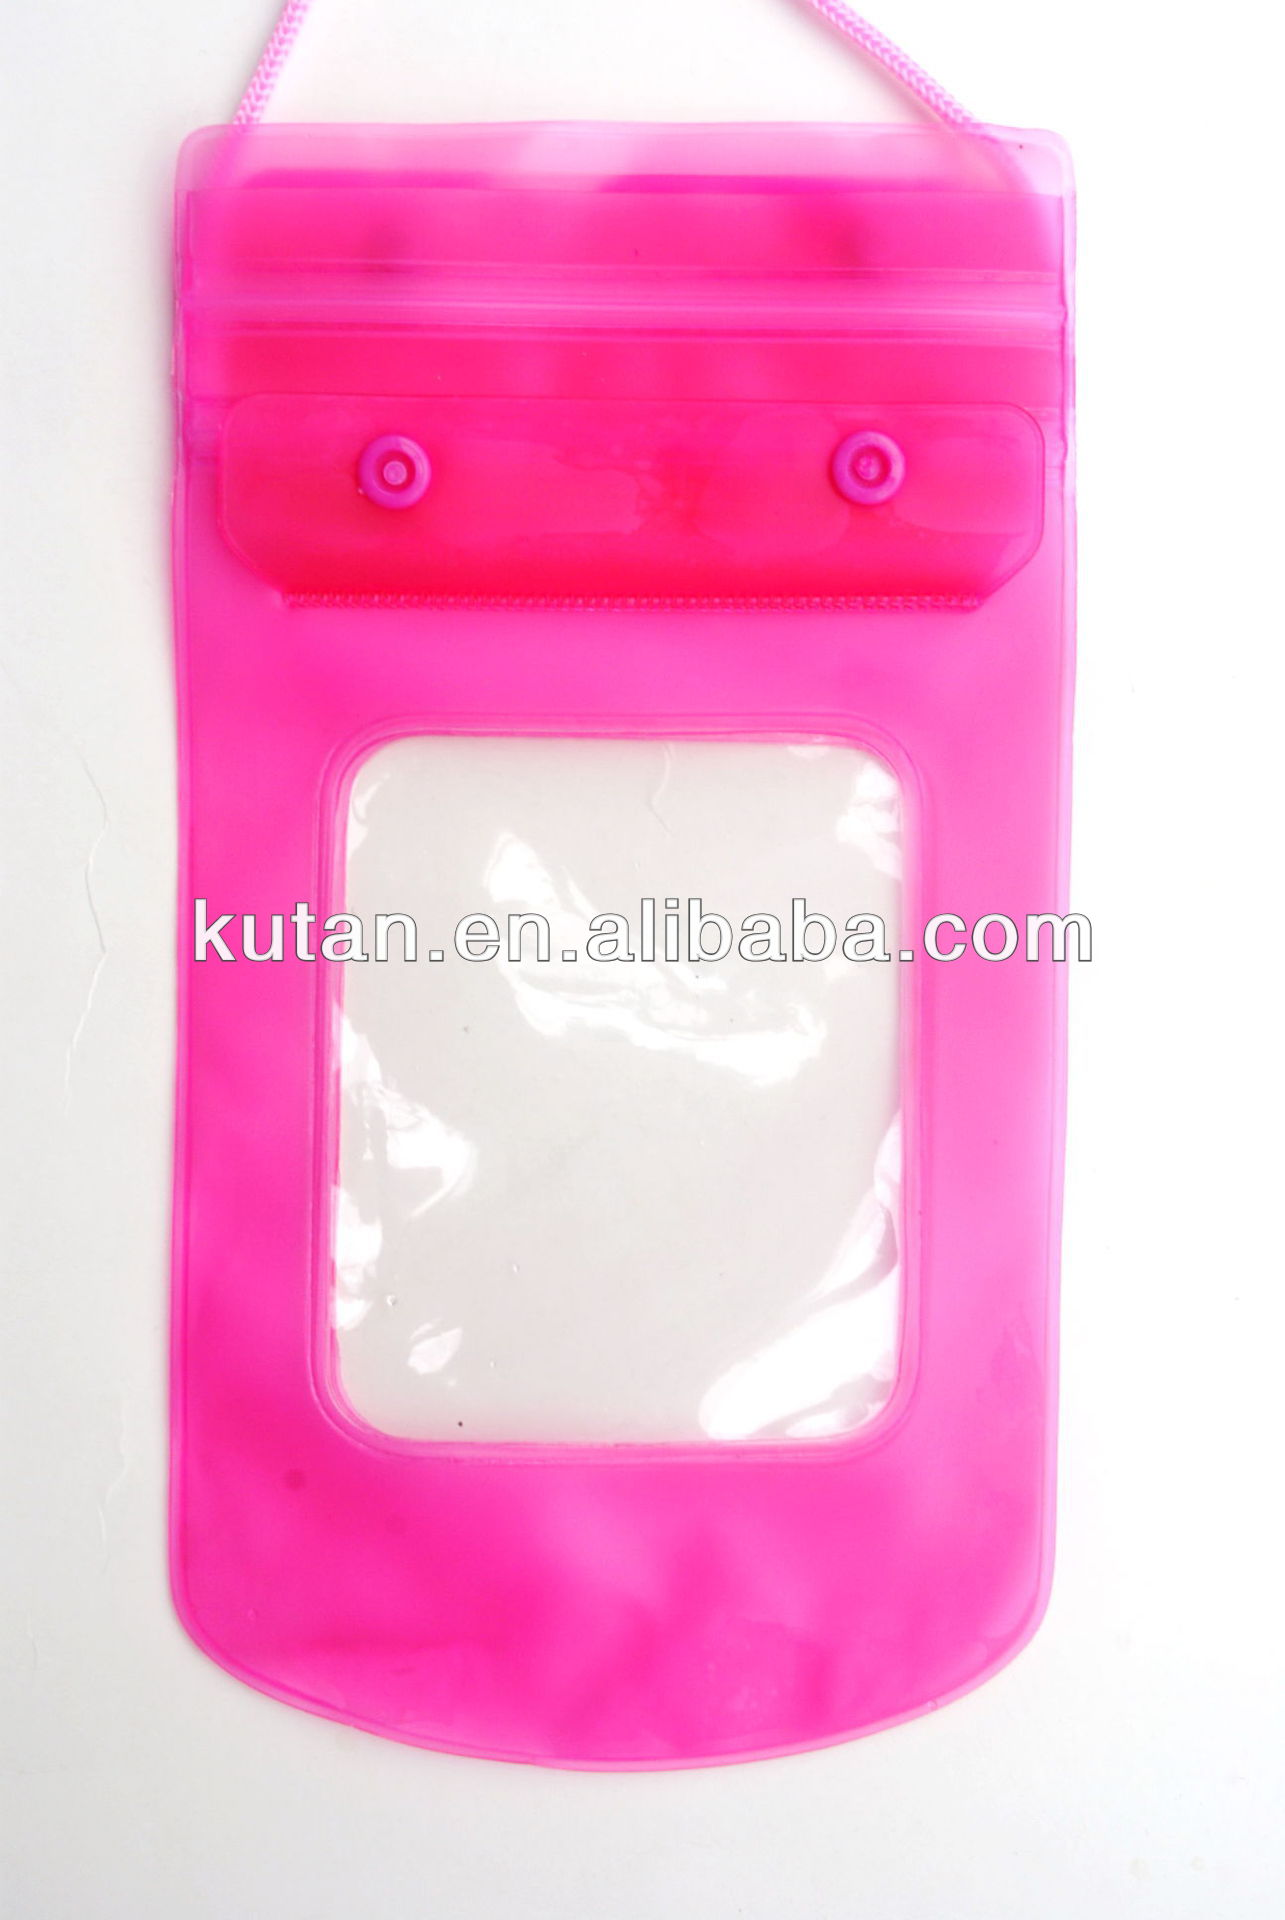 PVC promotional waterproof bag for phone/camera/keys